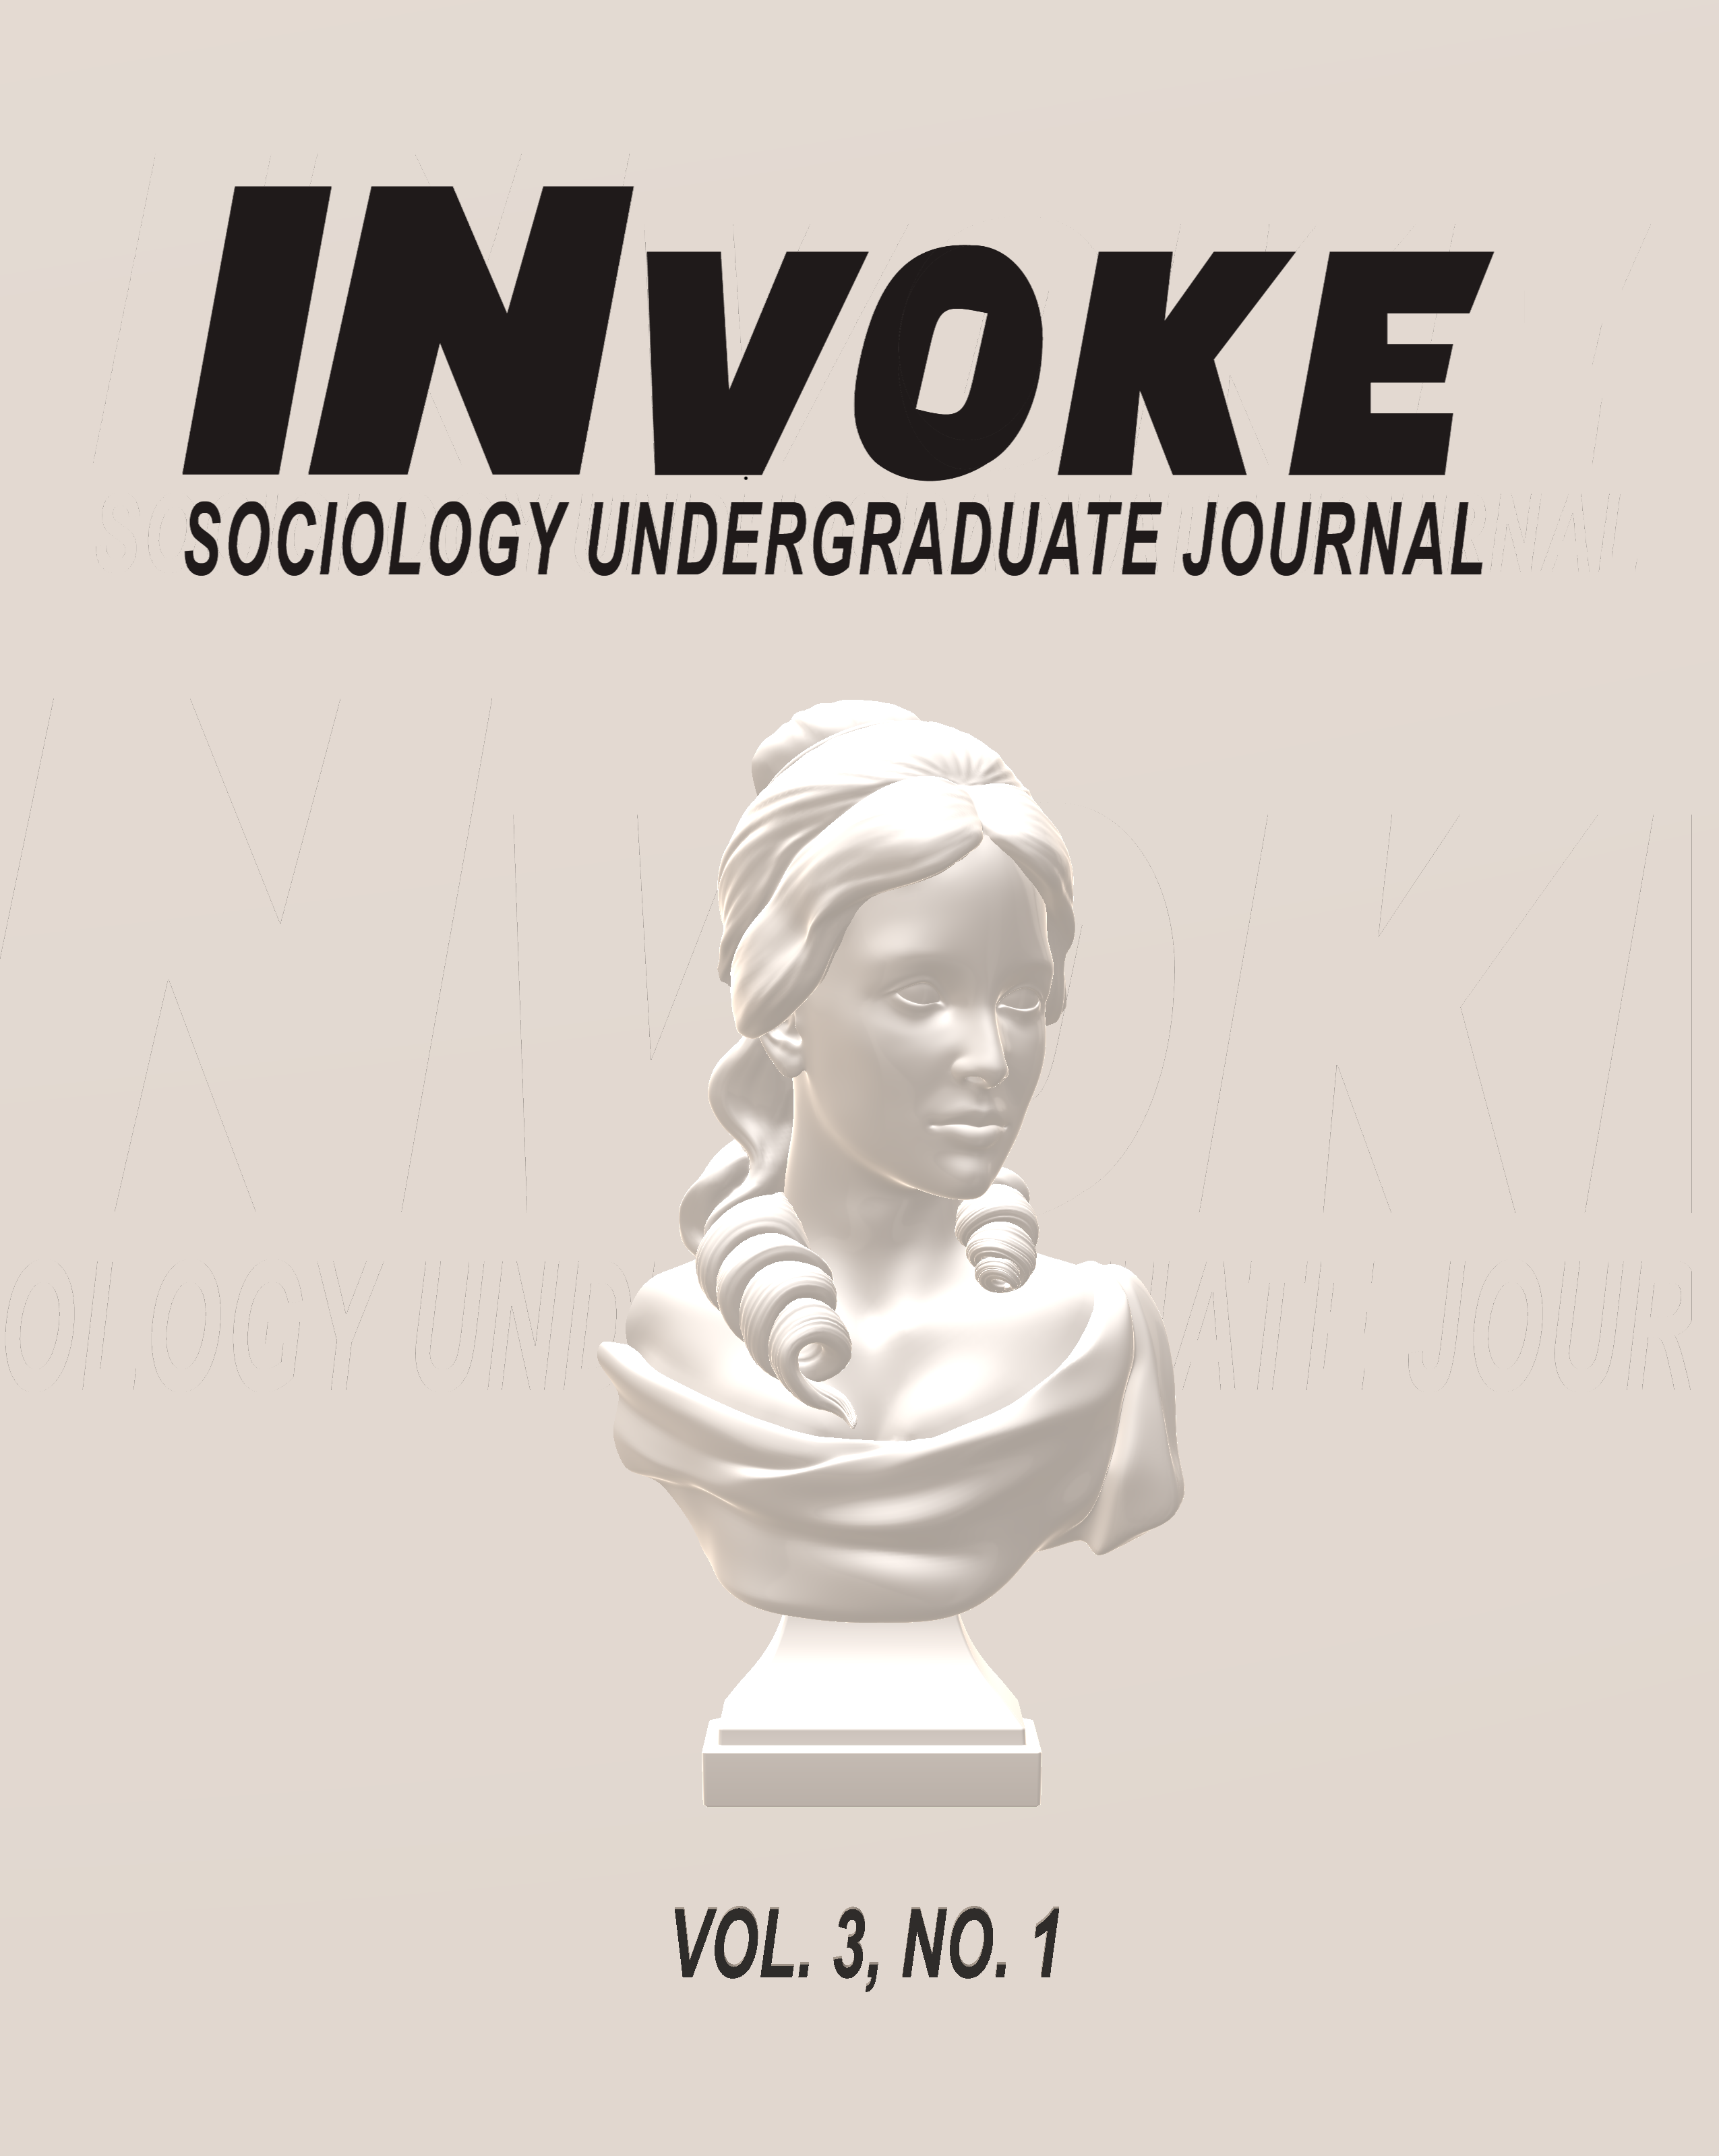 INvoke Sociology Undergraduate Journal: Vol. 3, No. 1